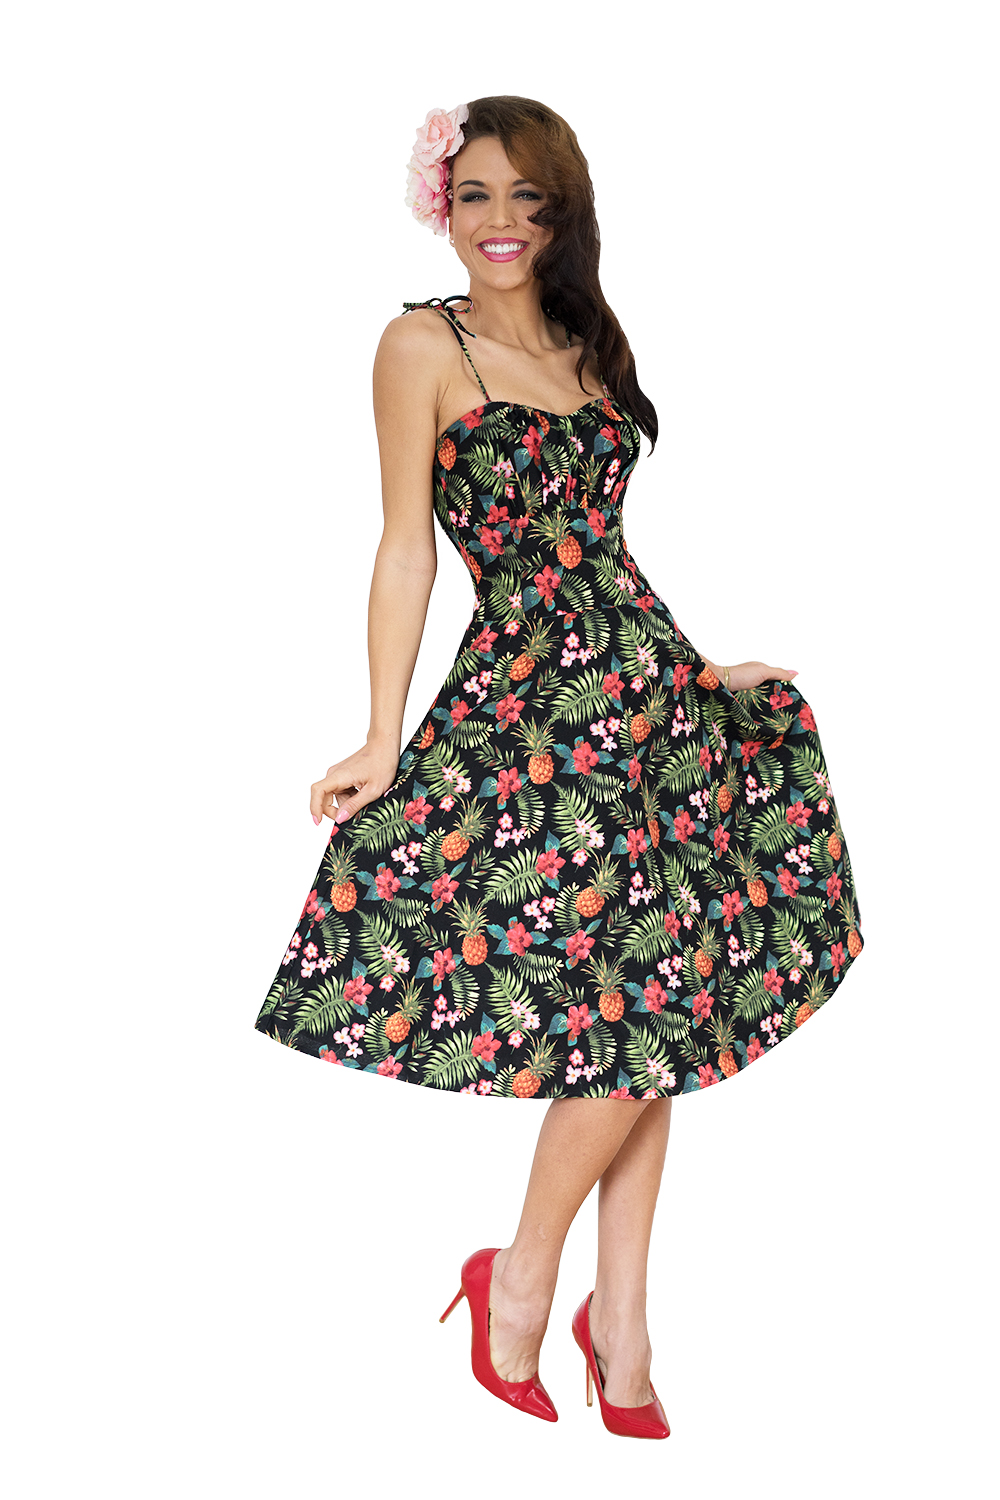 Hawaii Flower rockabilly retro Hibiskus Swing Kleid Petticoatkleid